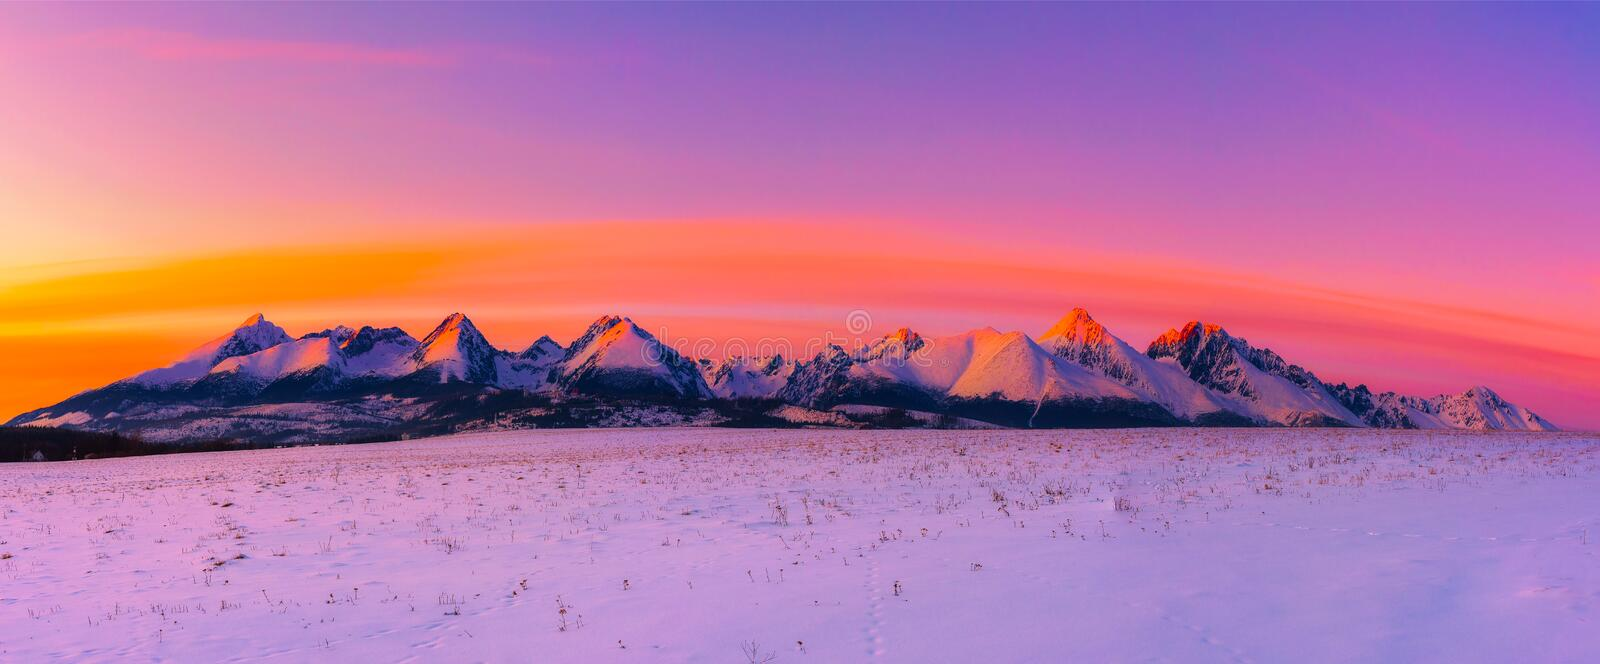 High Tatra Mountains in winter at sunset stock photo